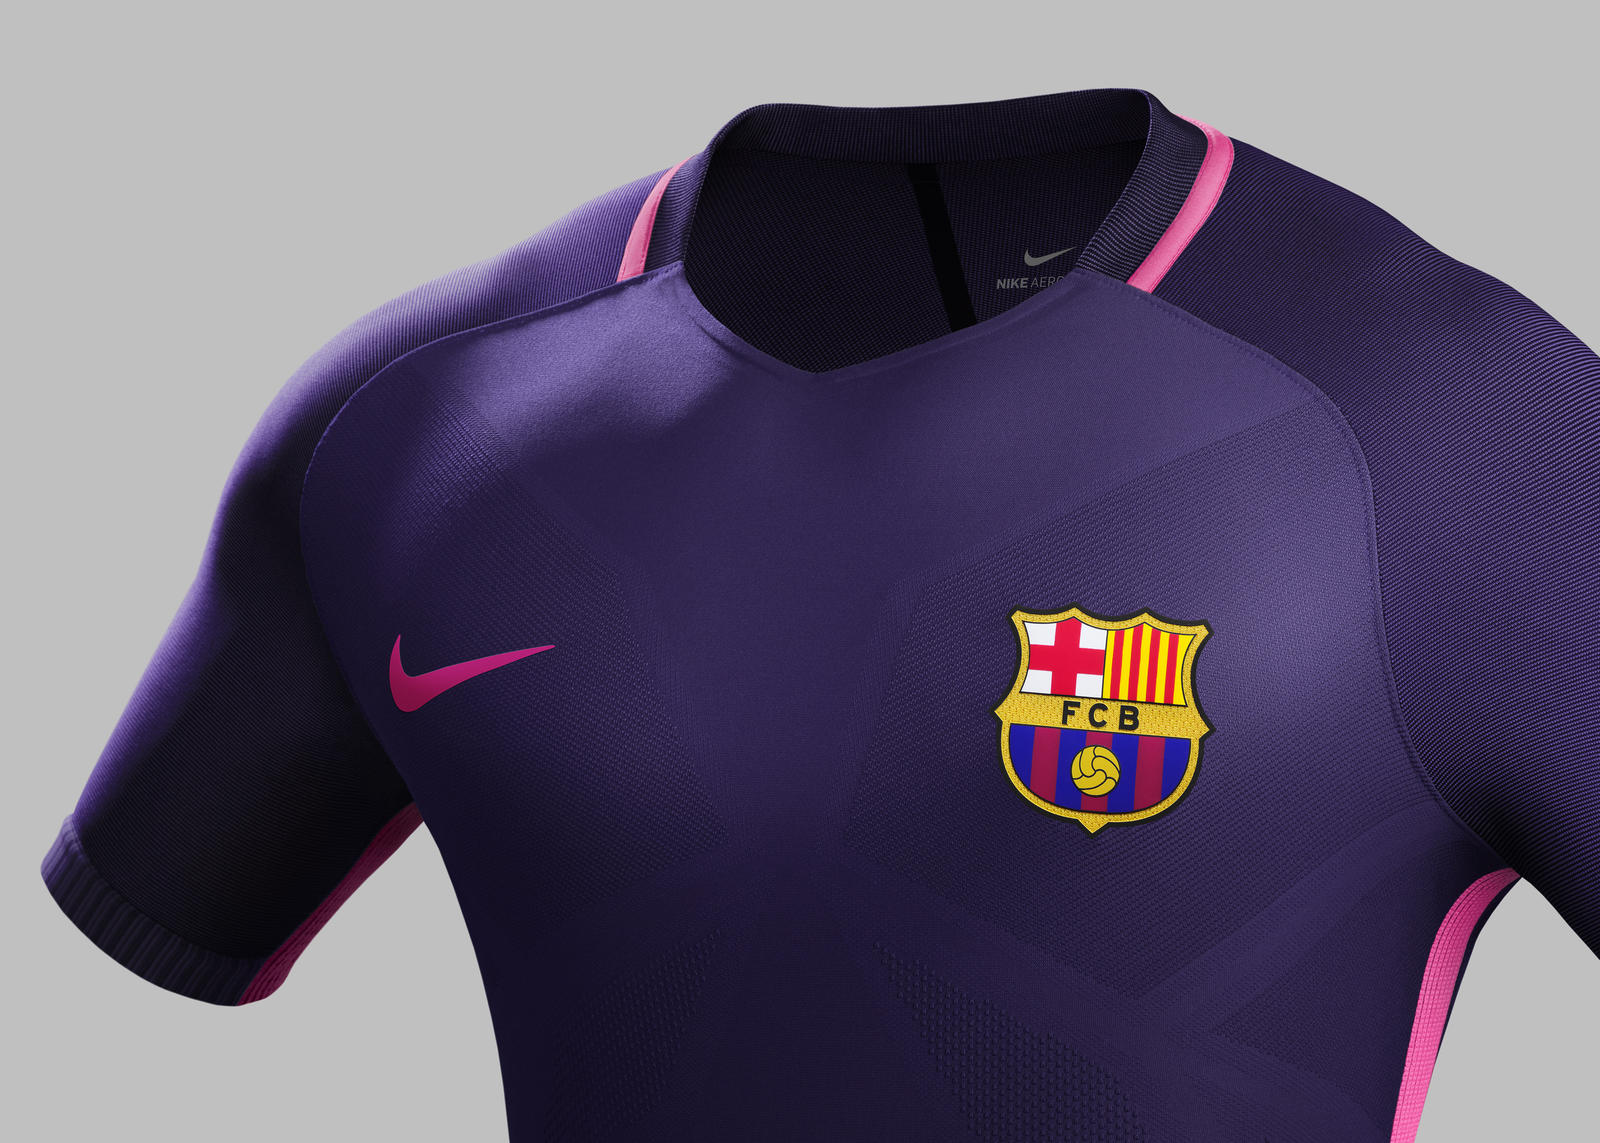 FC BARCELONA AWAY KIT 2016-17 - Nike News 371d1dc12f5